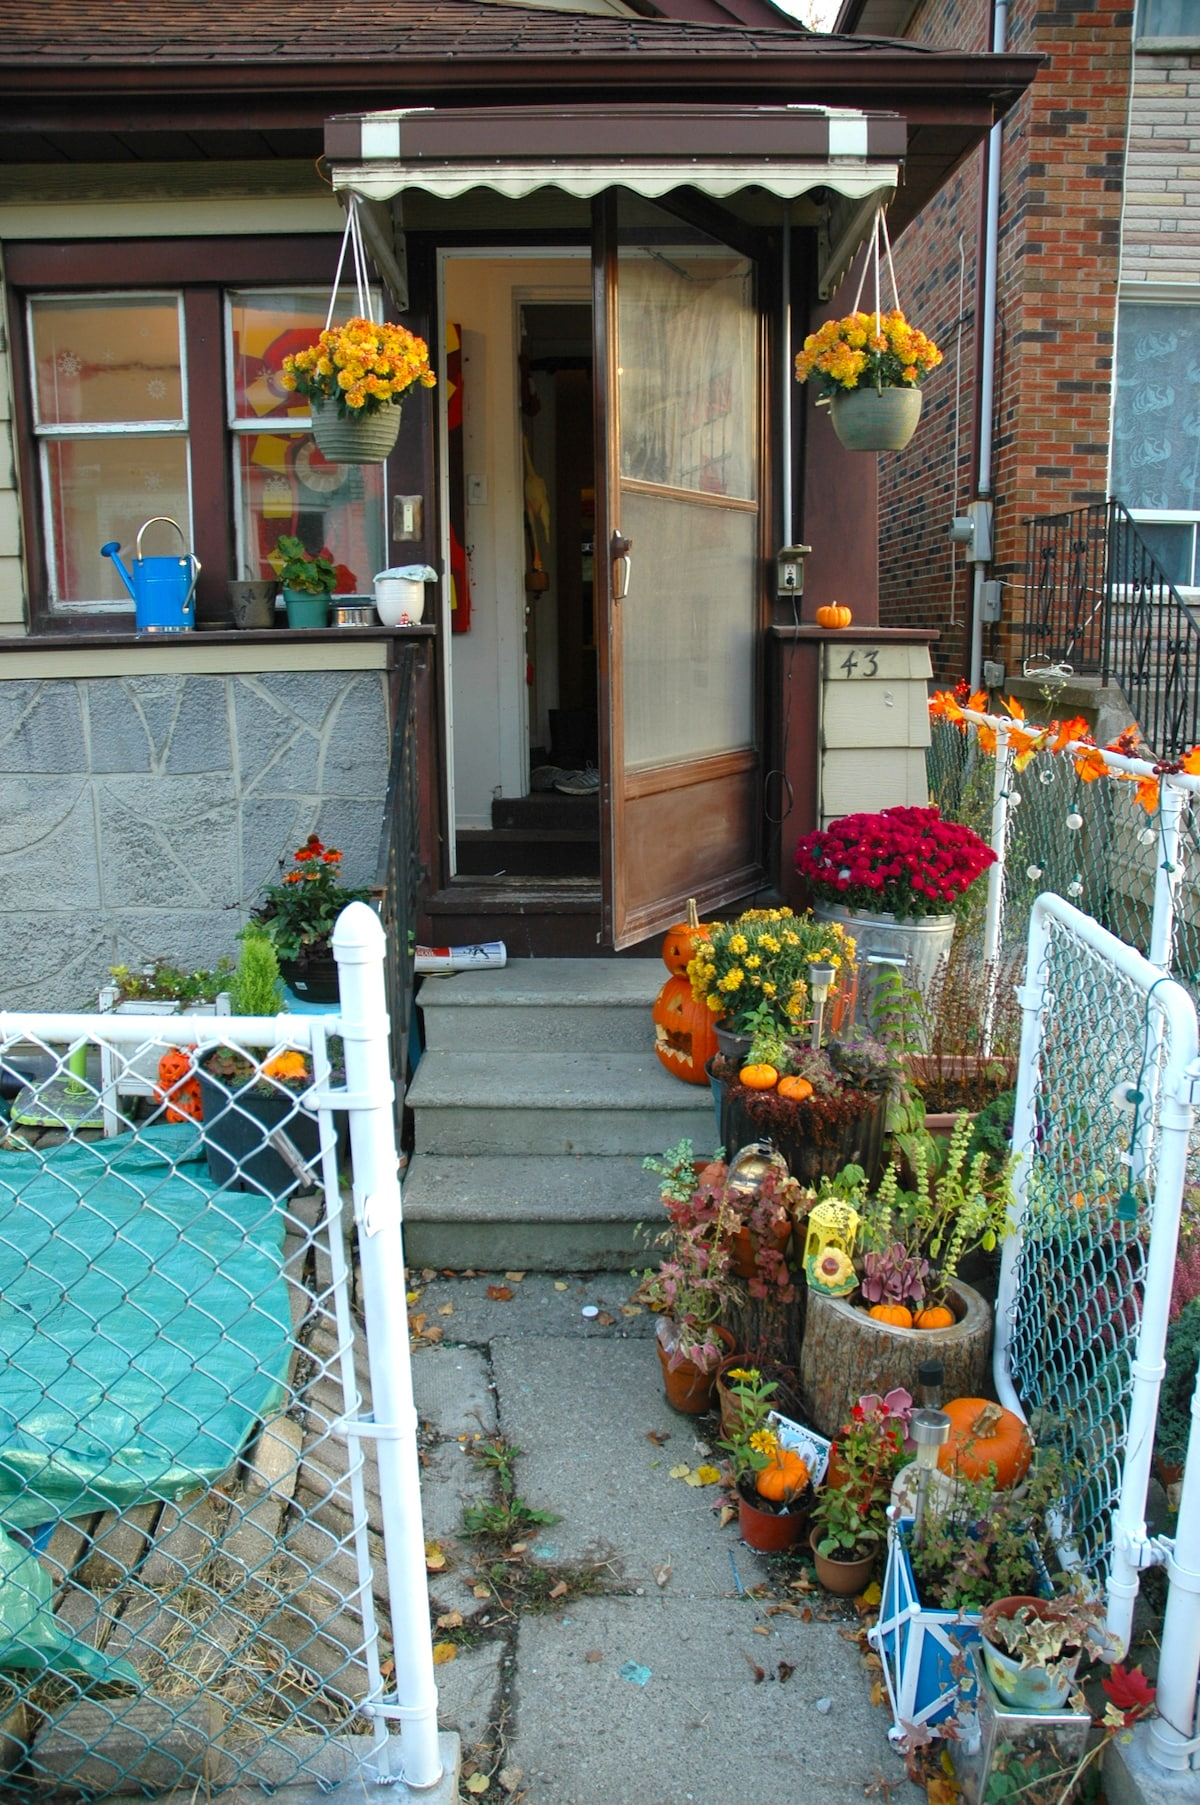 A little bit of love leading up the door. finally got my little garden going in the front:)